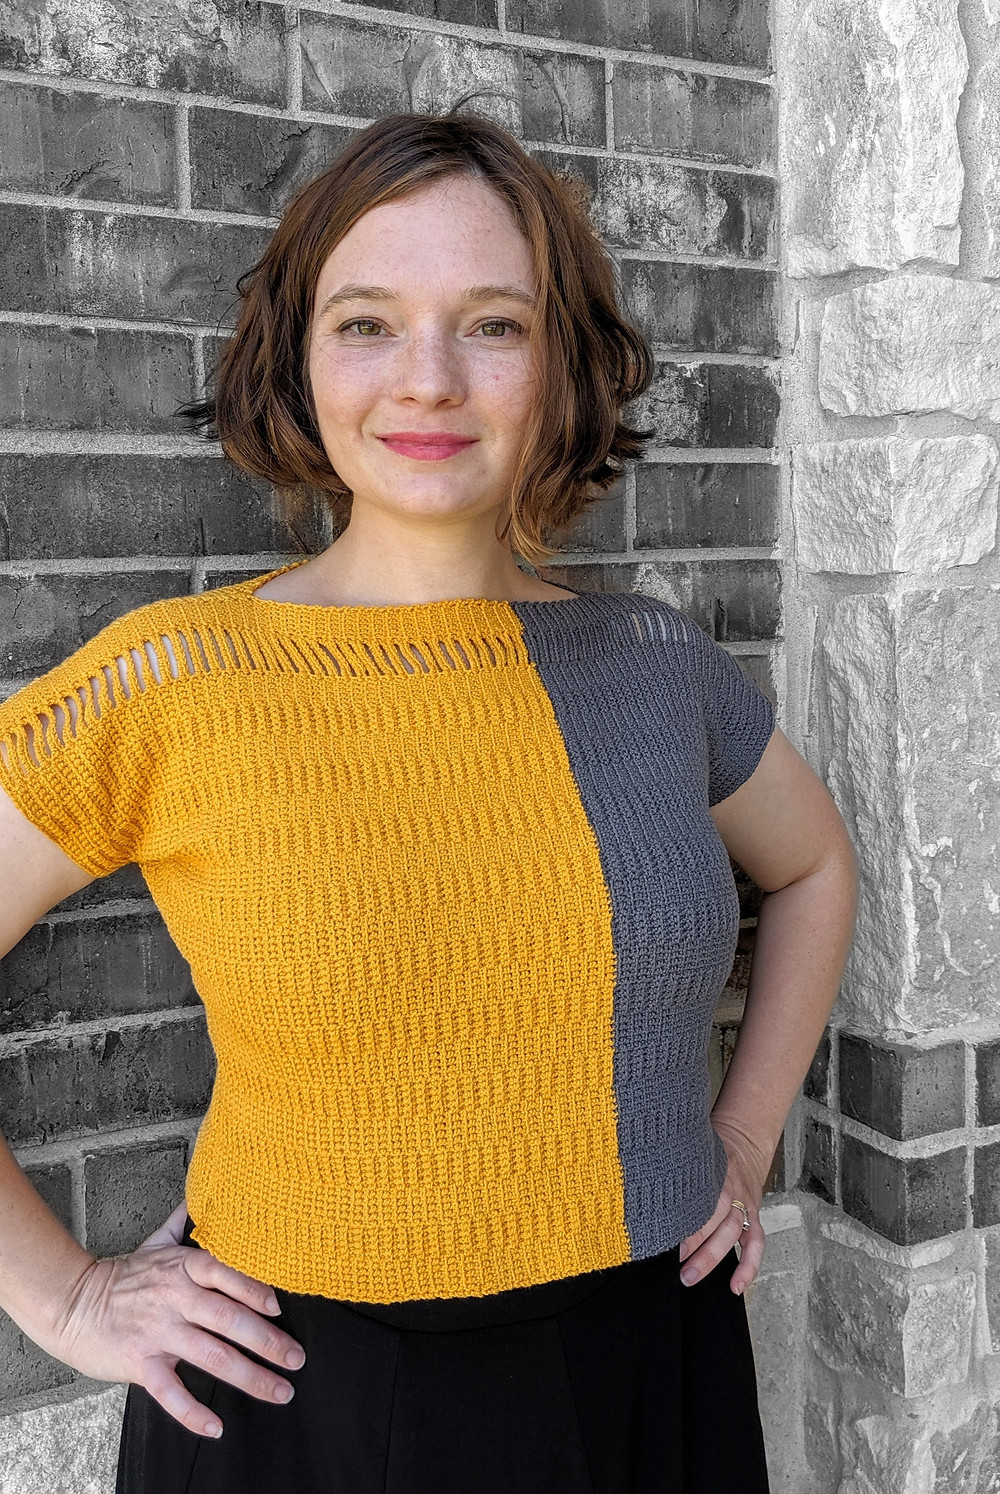 Tarmac Tee, Designed and Crocheted by Connie Lee Lynch of CrochEt Cetera by Connie Lee, Published in Interweave Crochet Magazine Spring 2020 Edition